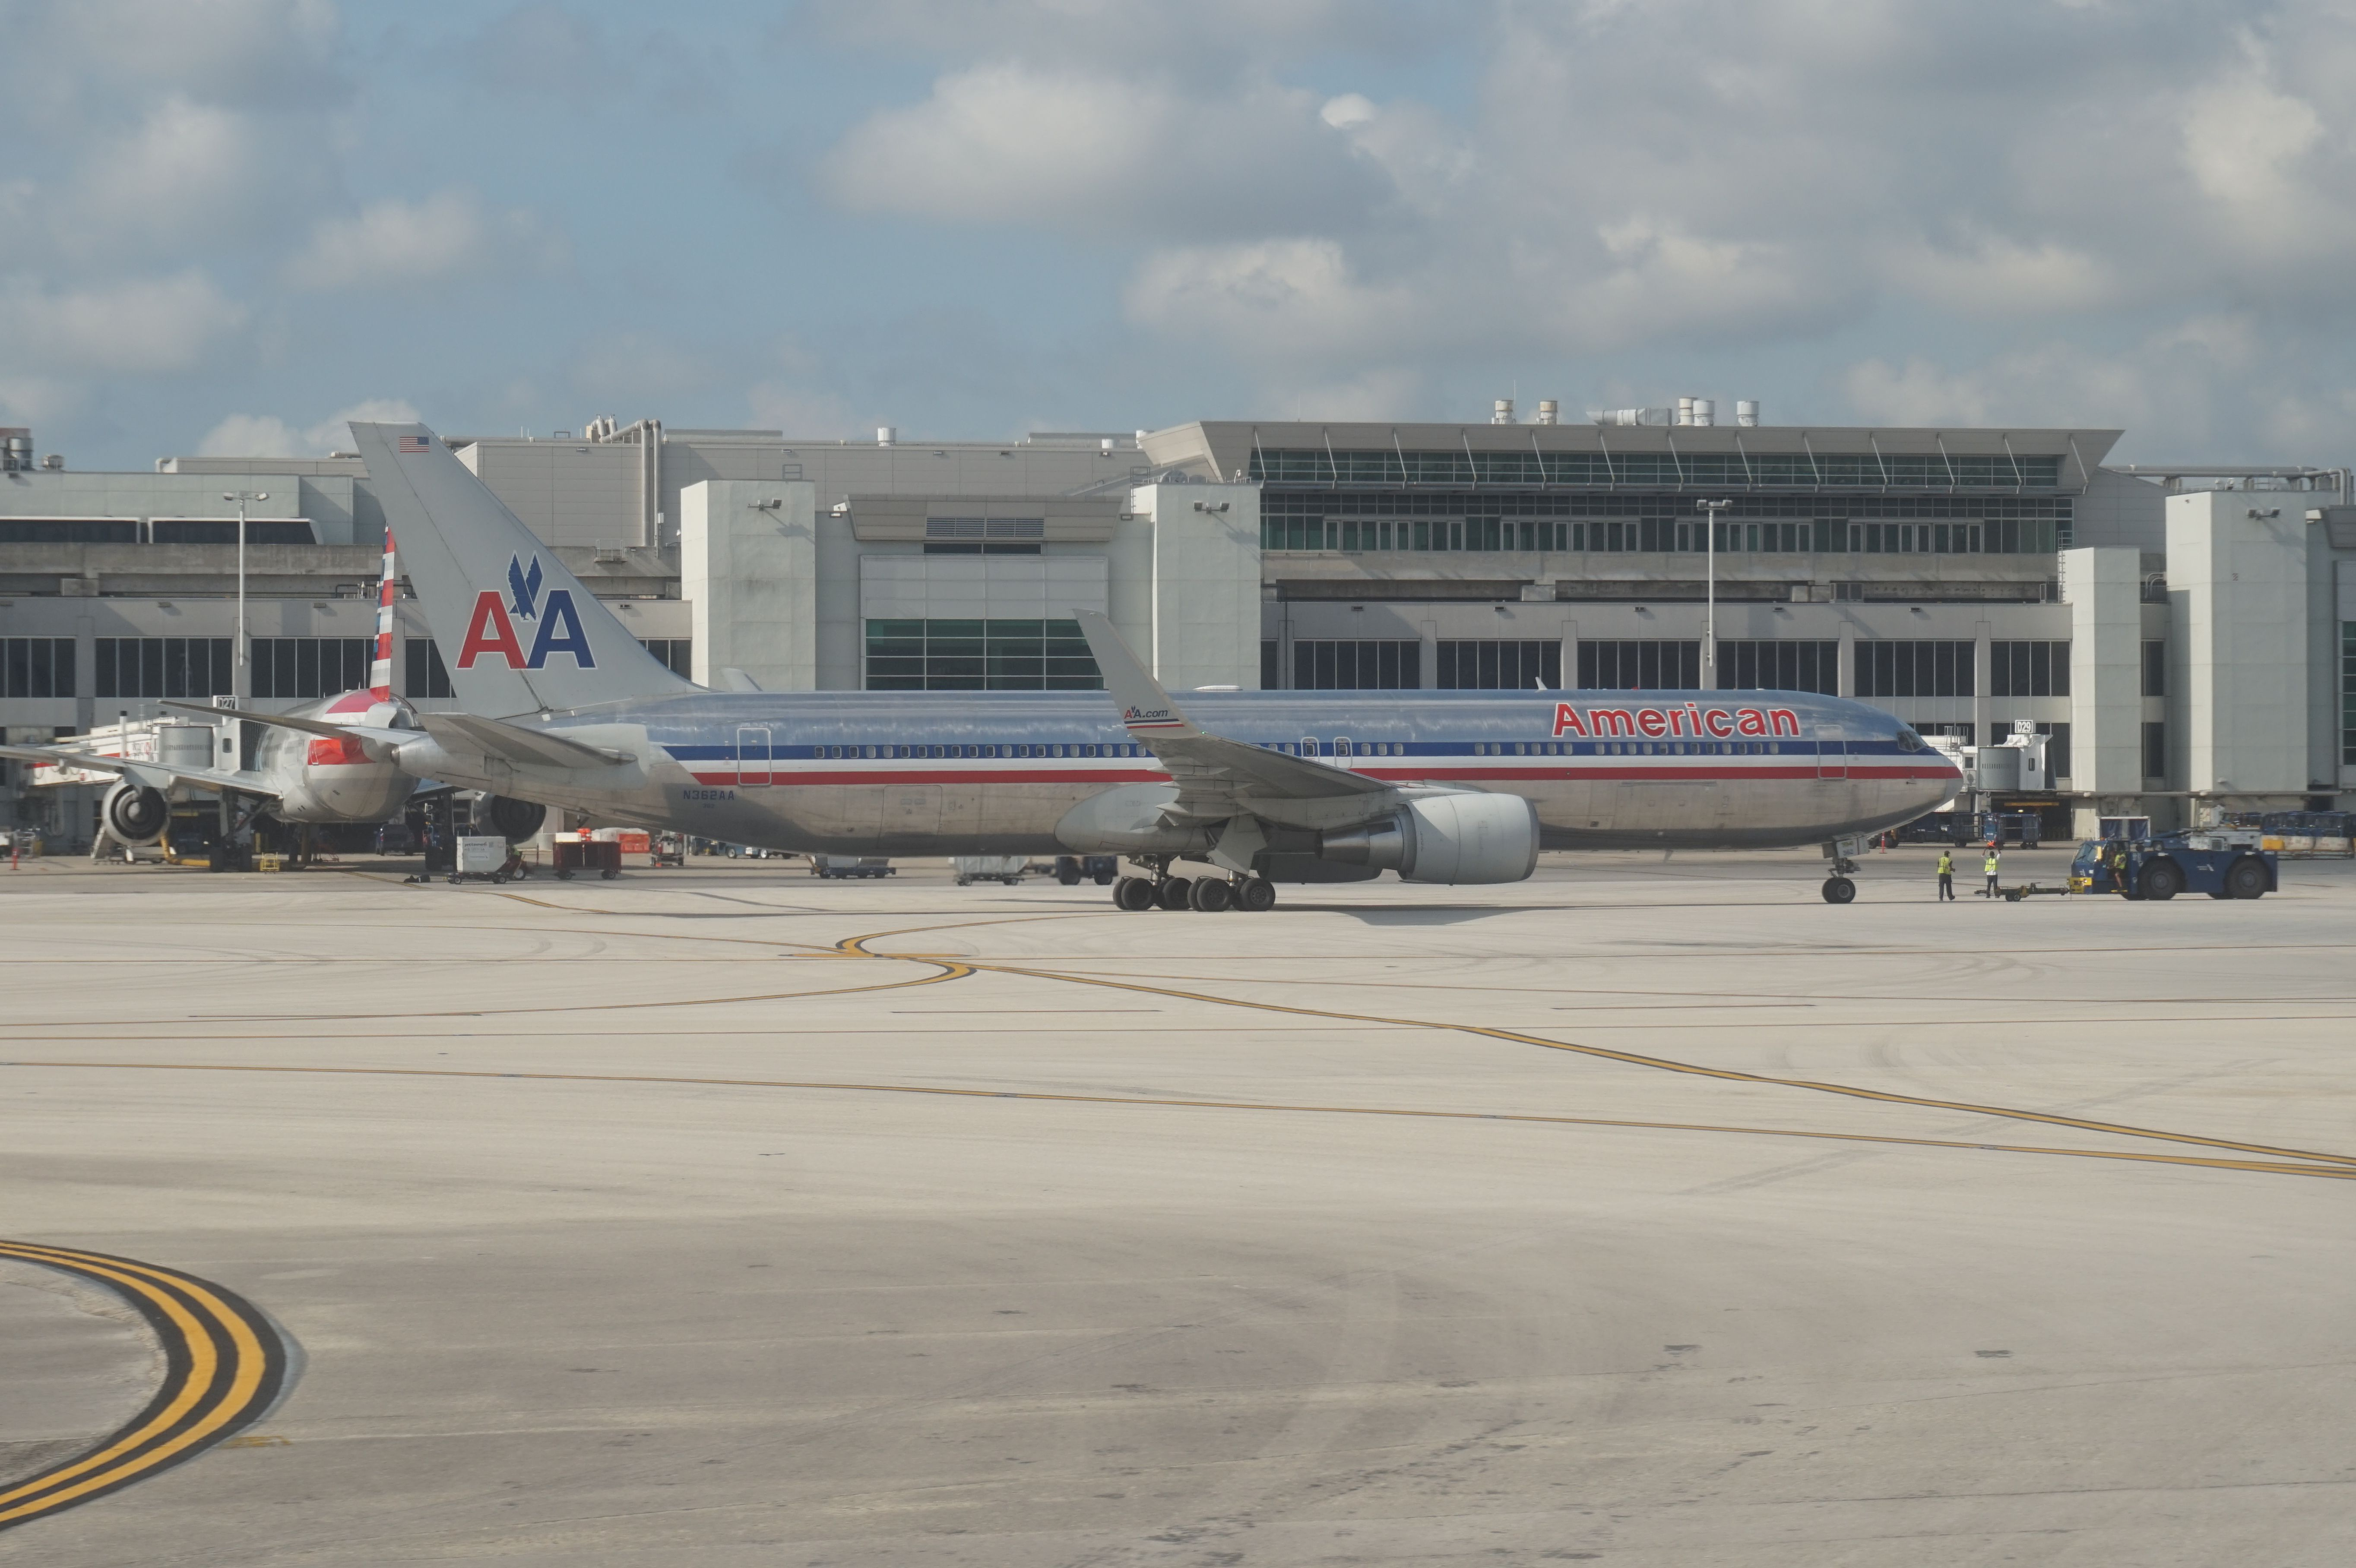 American Airlines B767 at Miami International Airport, in